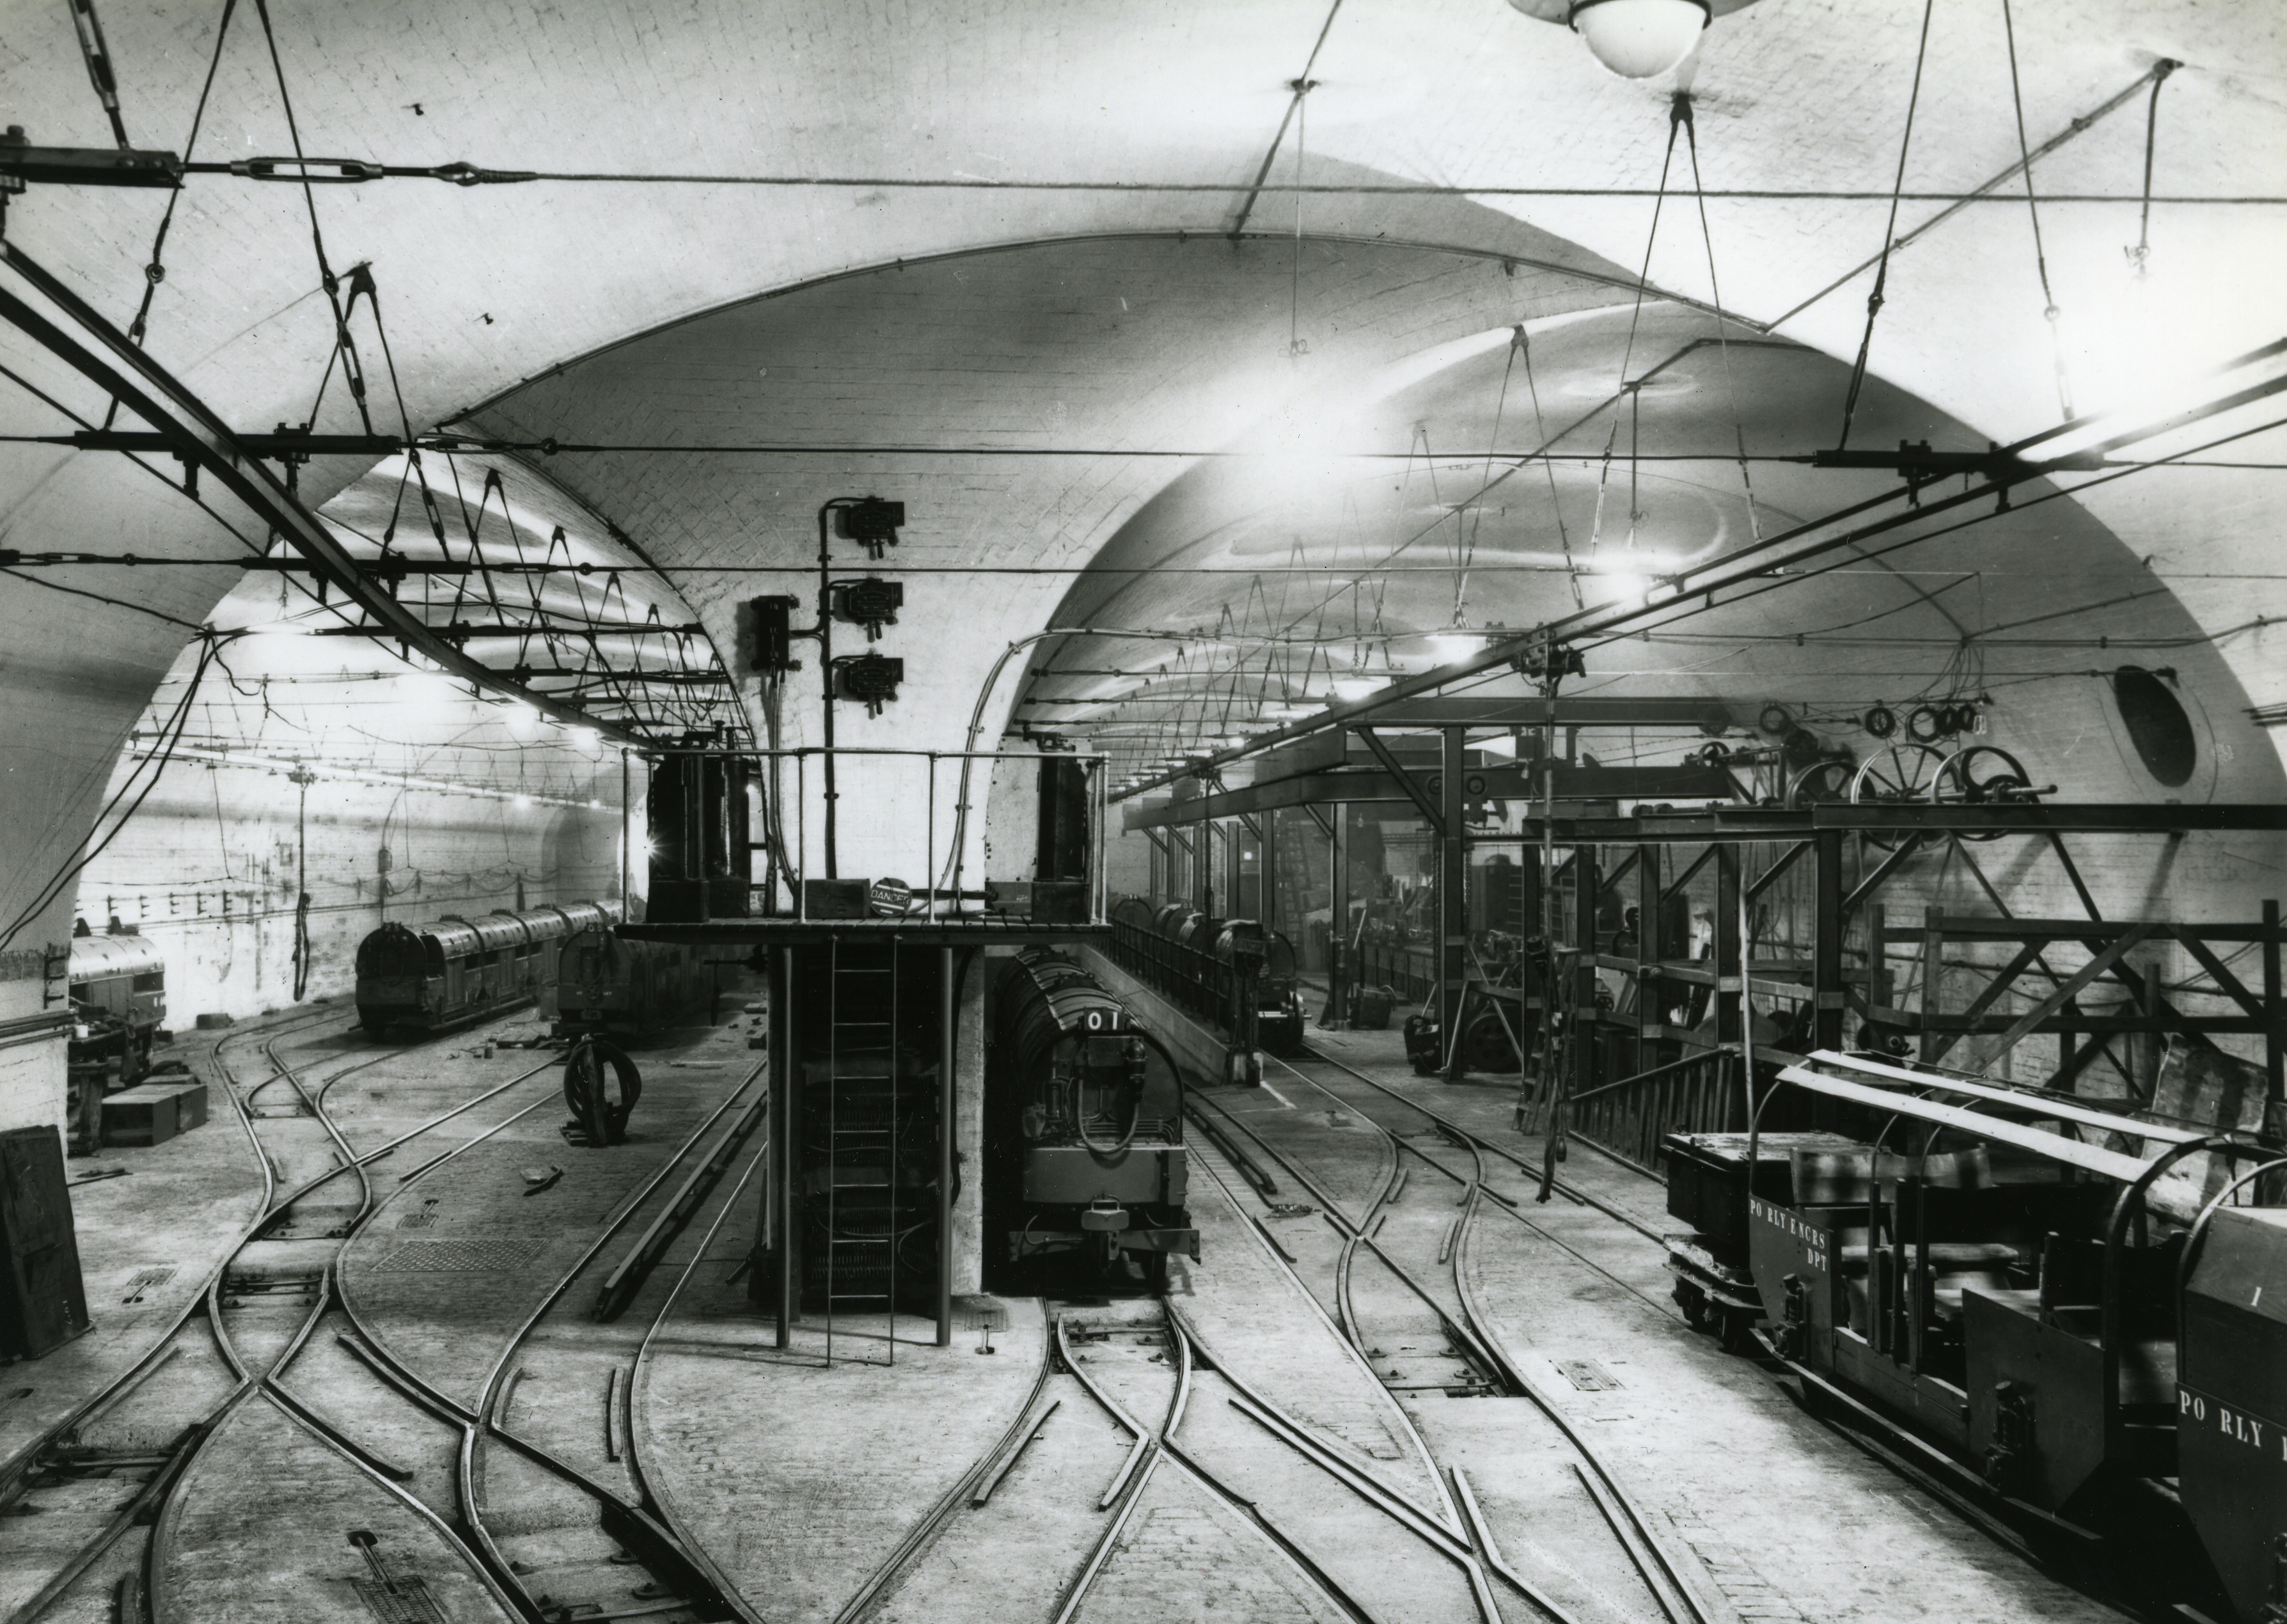 An old photograph from The Royal Mail Group archive showing the car depot of workshop of the rail service at display at The Postal Museum